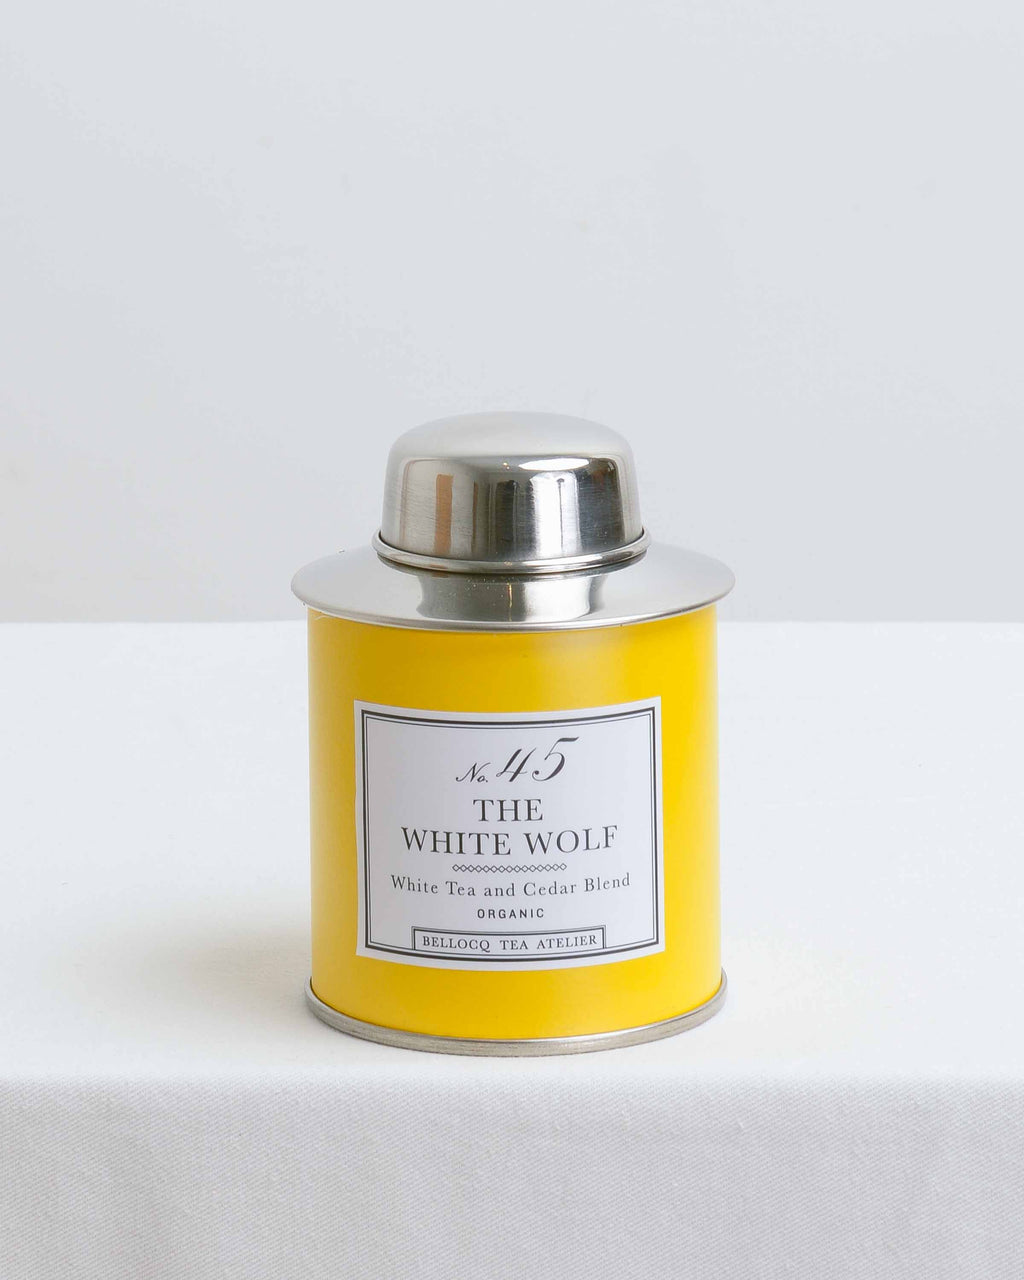 The White Wolf Yellow Tea Caddy